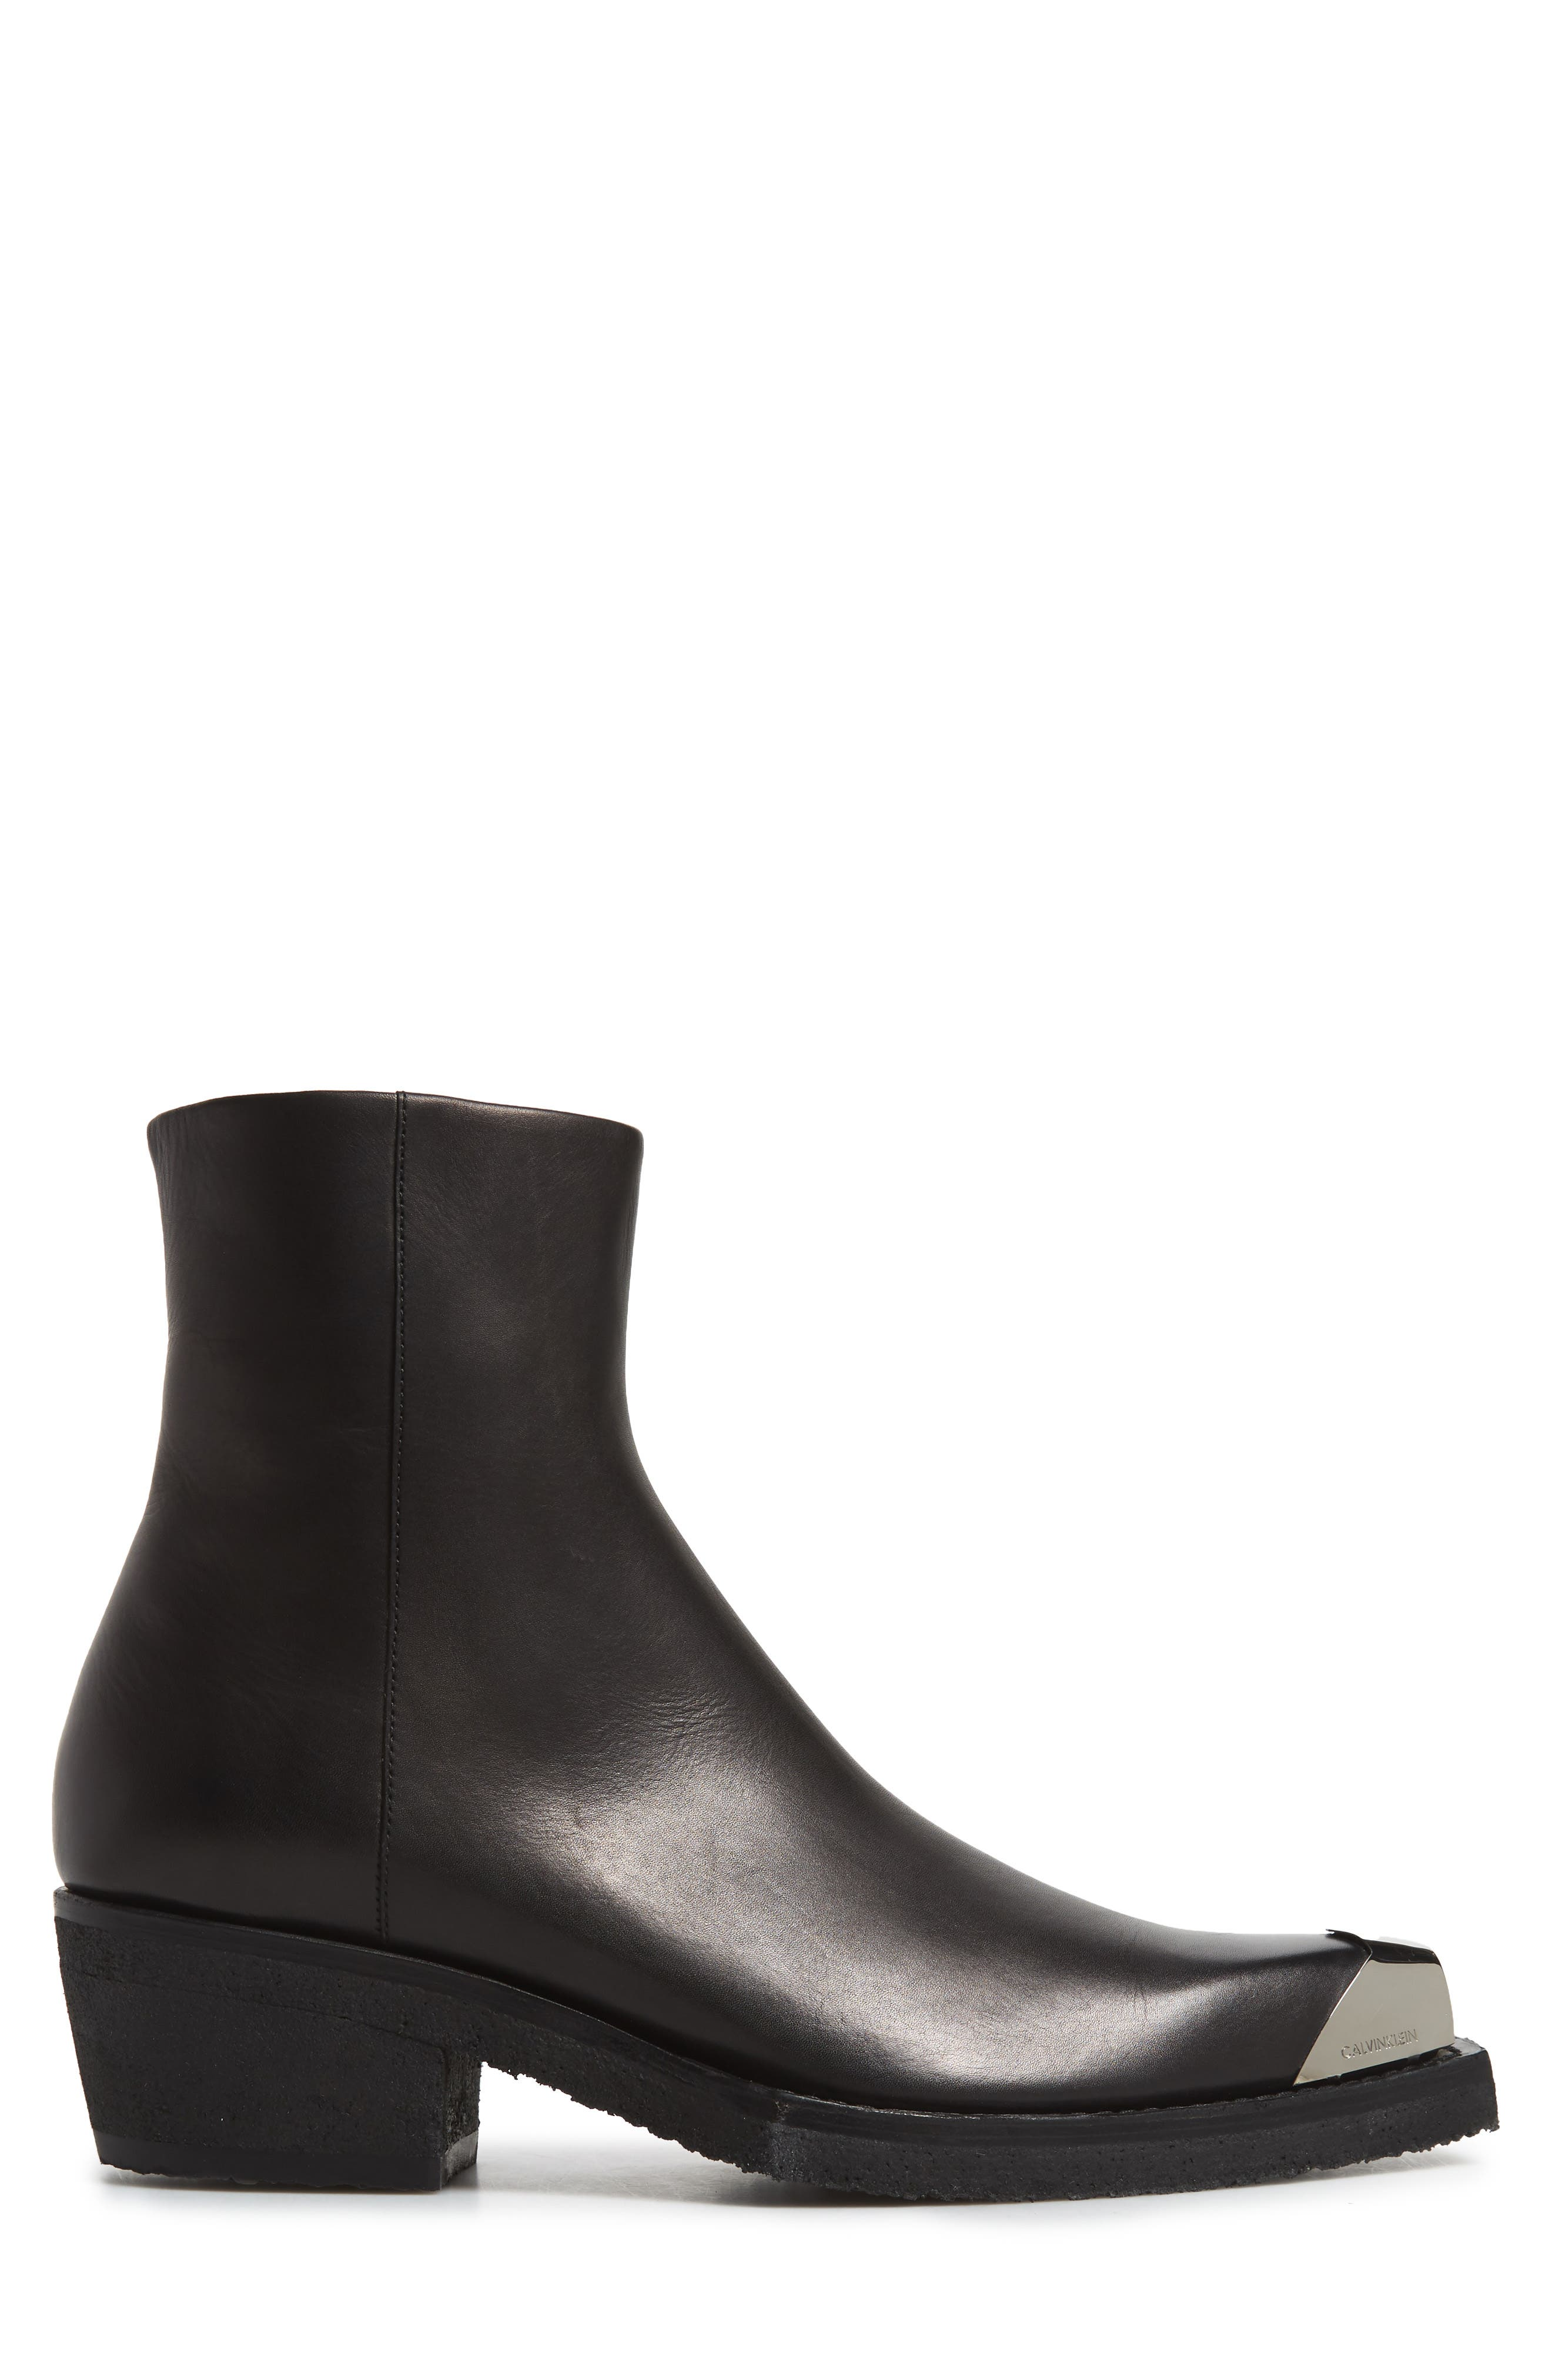 Cal Clute Boot,                             Alternate thumbnail 3, color,                             001